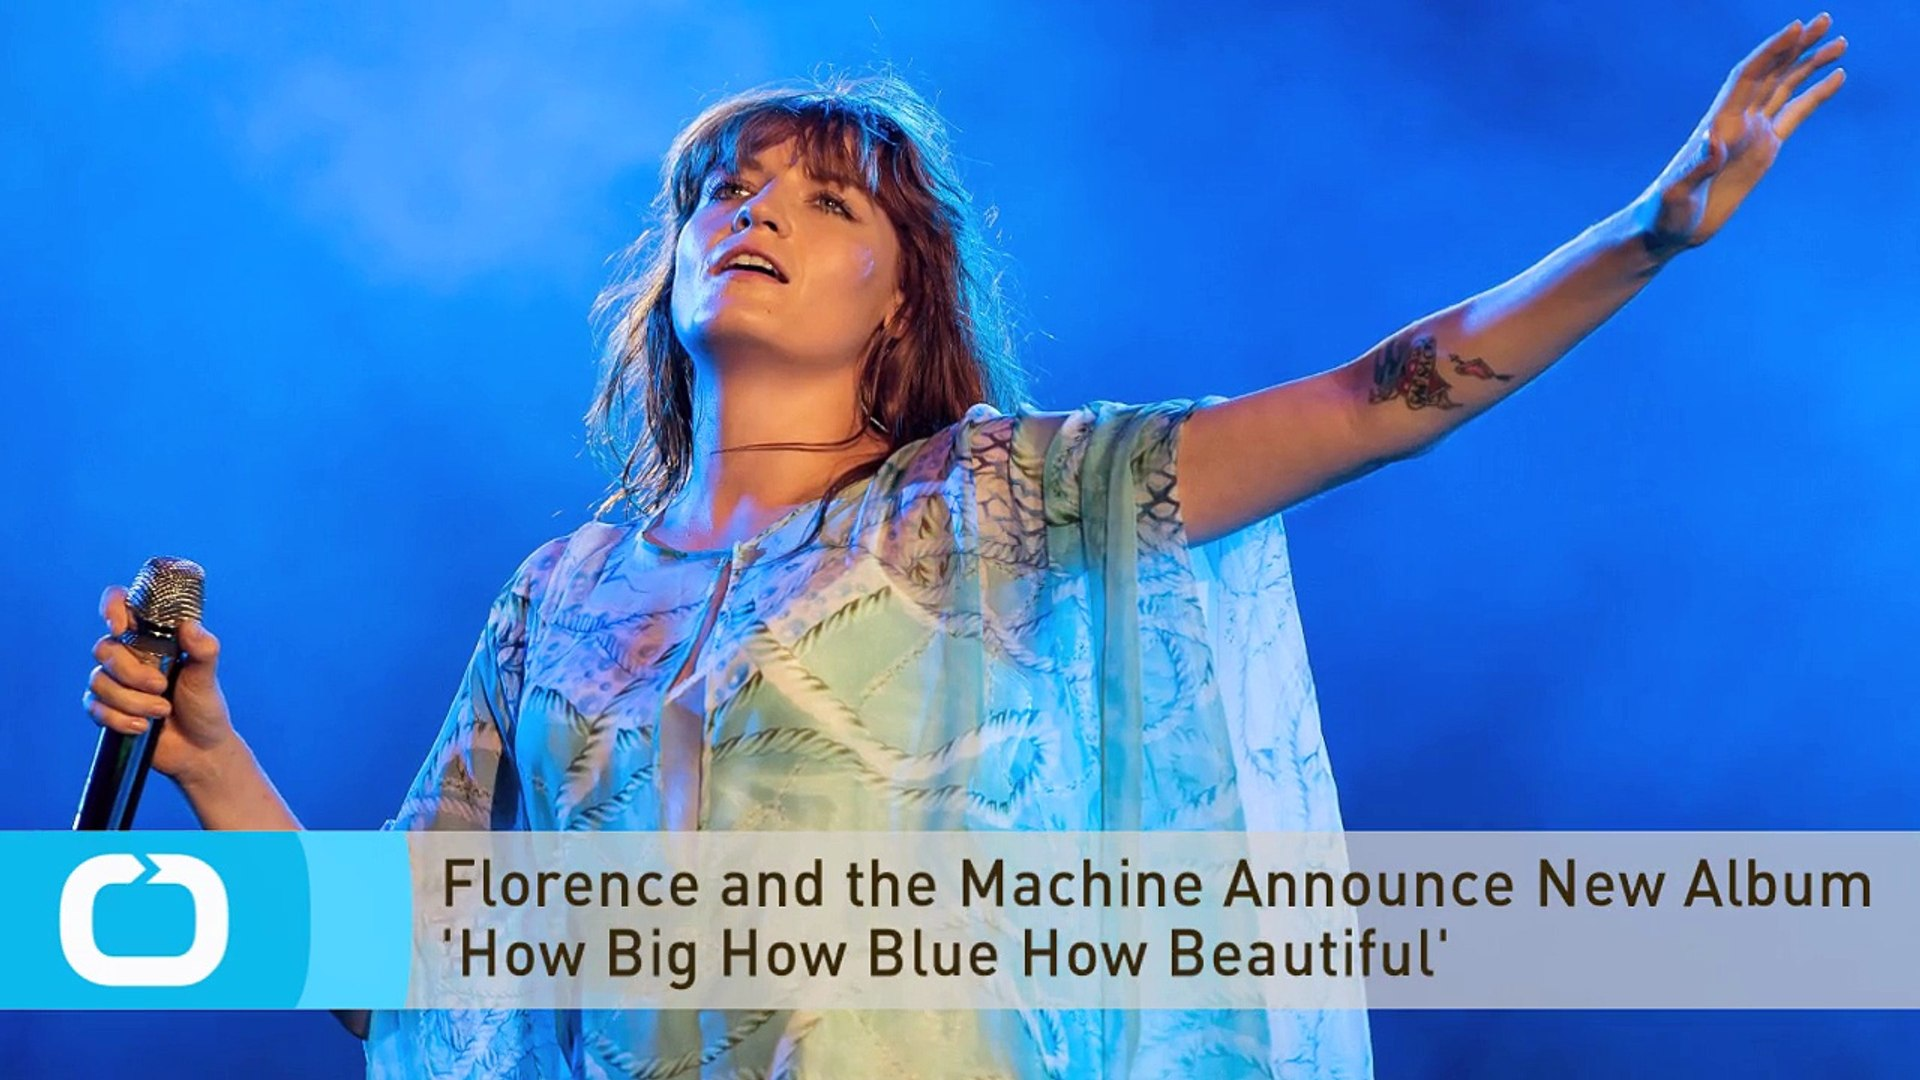 Florence and the Machine Announce New Album 'How Big How Blue How Beautiful'